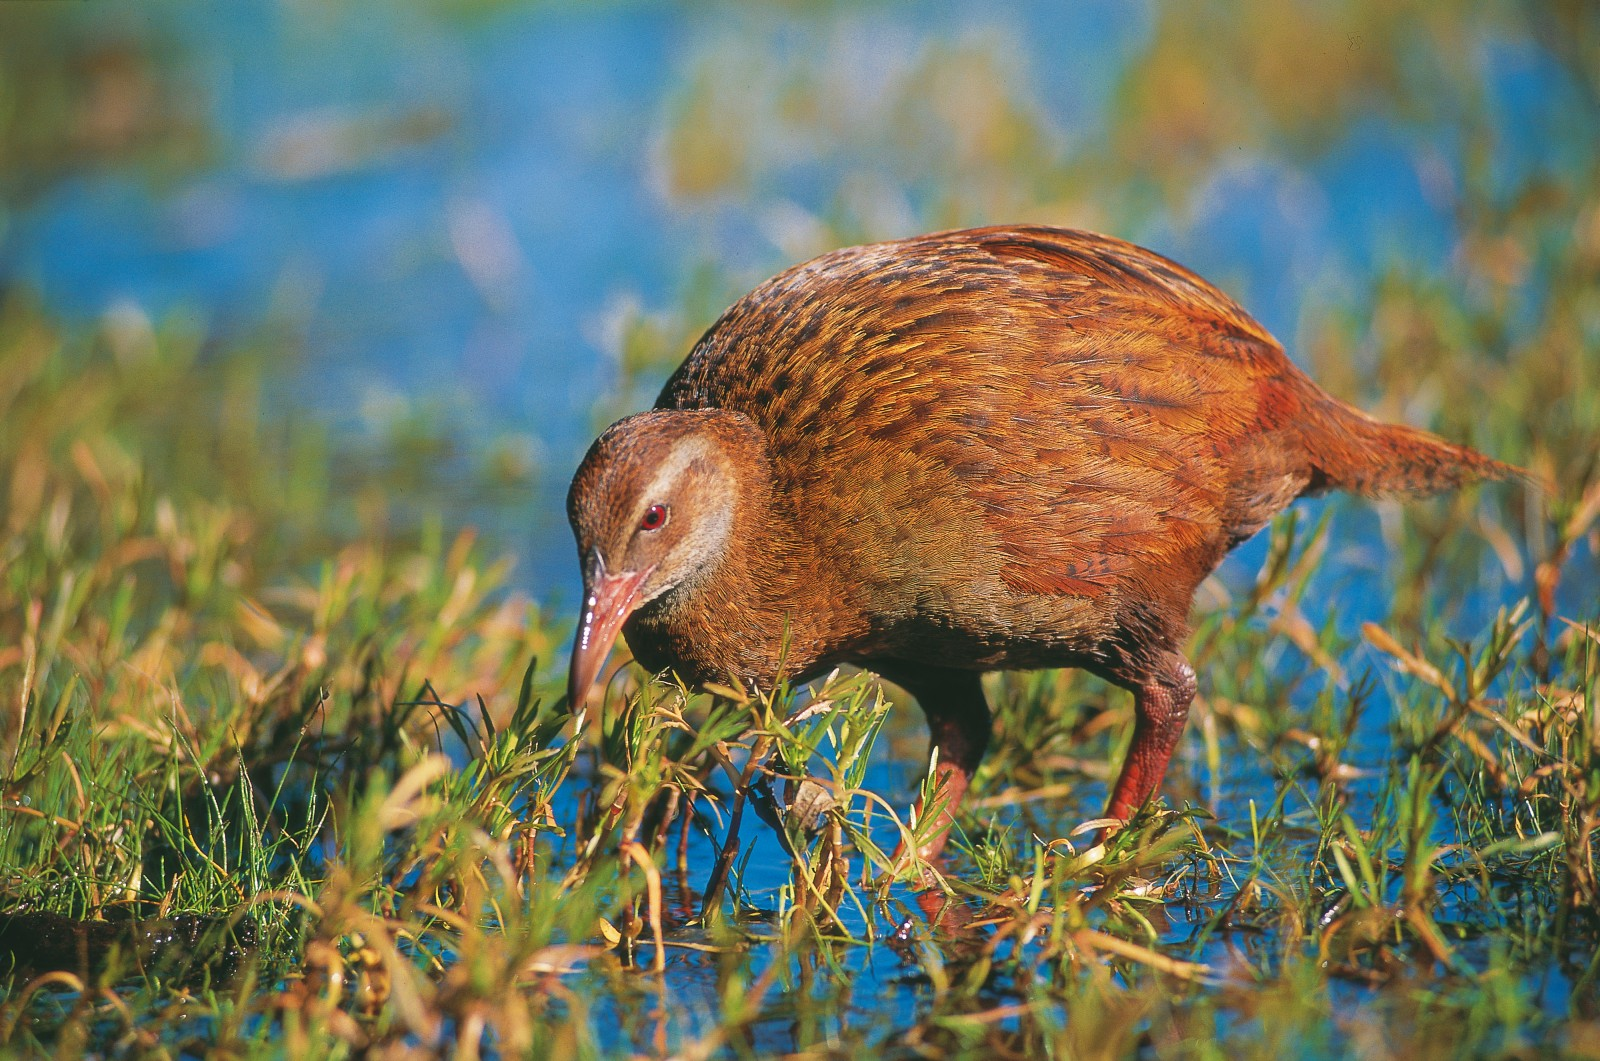 The weka's inability to fly has been offset by its great resourcefulness. Weka kill and eat rats and mice, spear and remove the eggs of other birds and browse on plant matter. Their diet also includes snails, worms, insects and even young petrels and penguins.